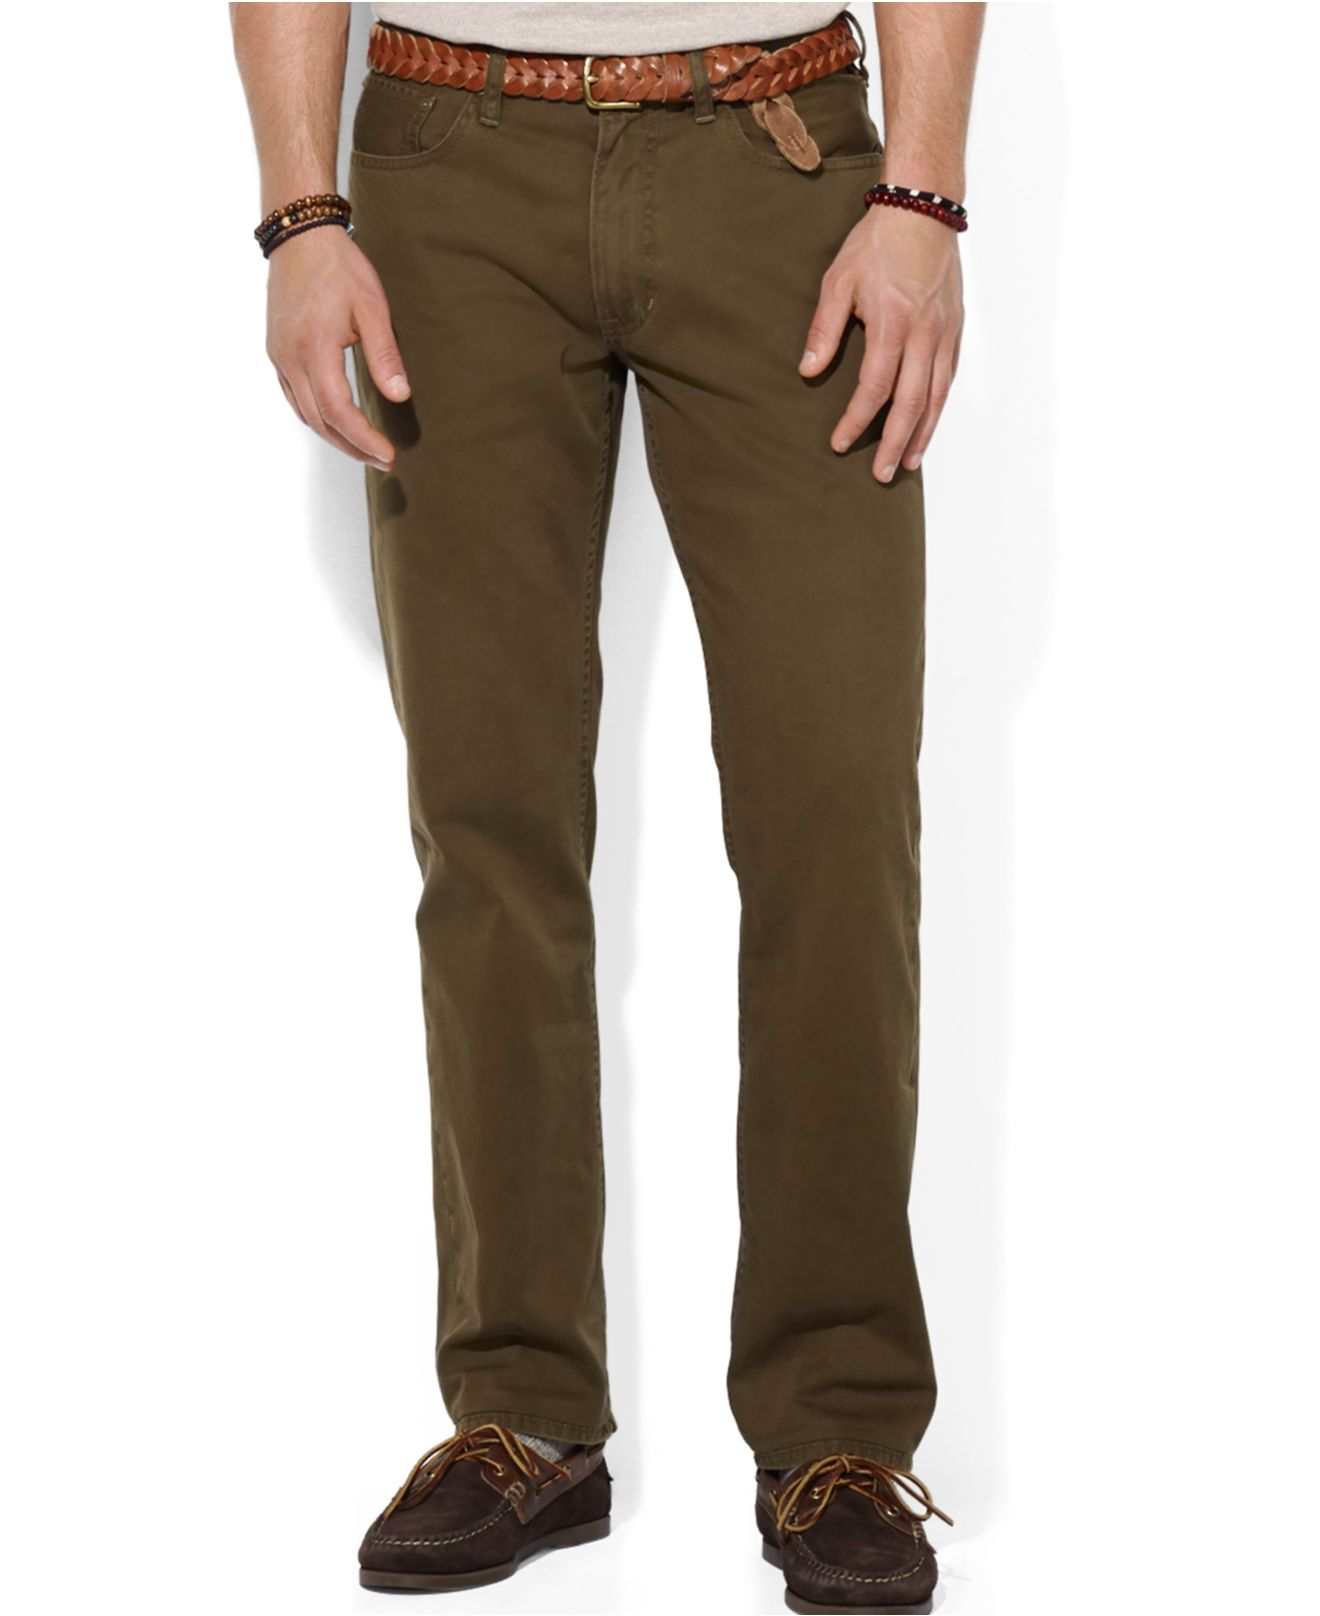 19013075bee6 Lyst - Polo Ralph Lauren Straight-fit 5-pocket Chino Pant in Natural ...